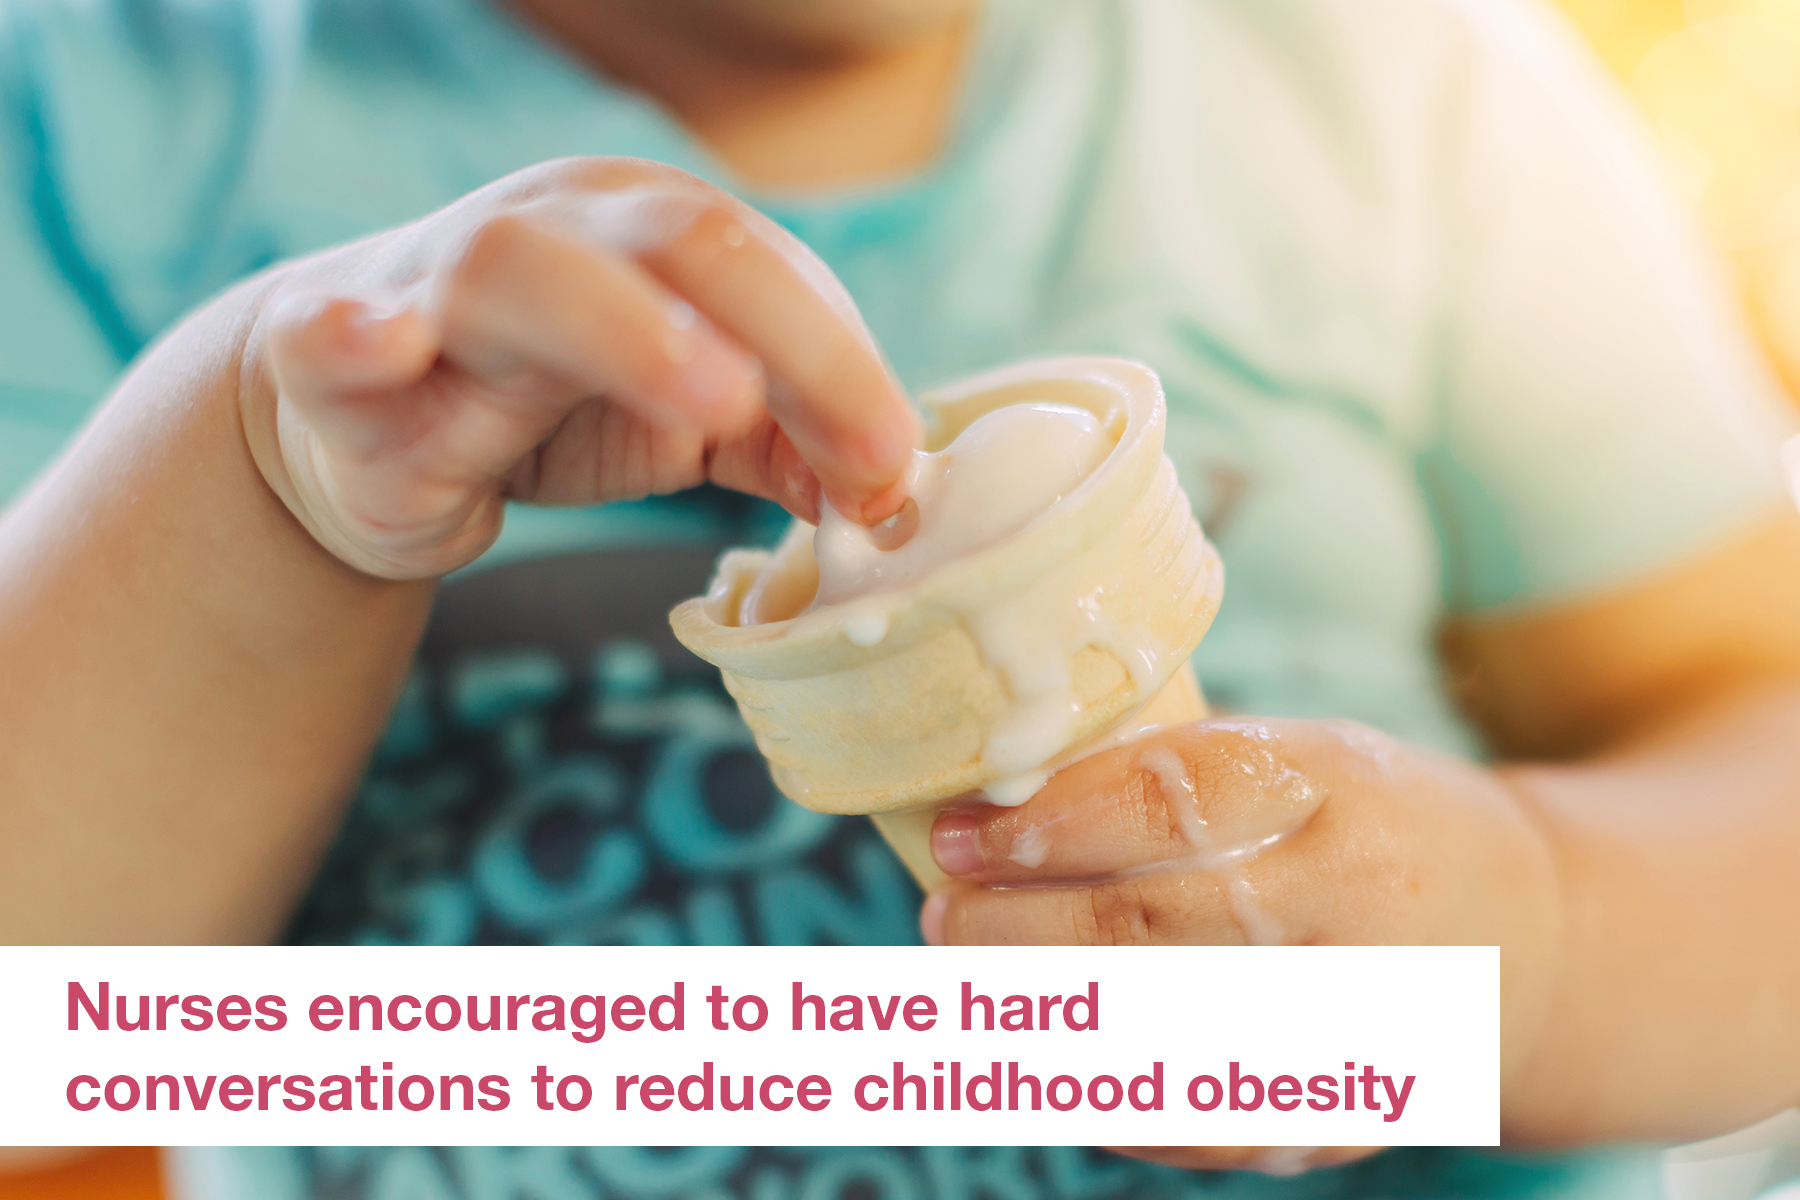 Nurses encouraged to have hard conversations to reduce childhood obesity